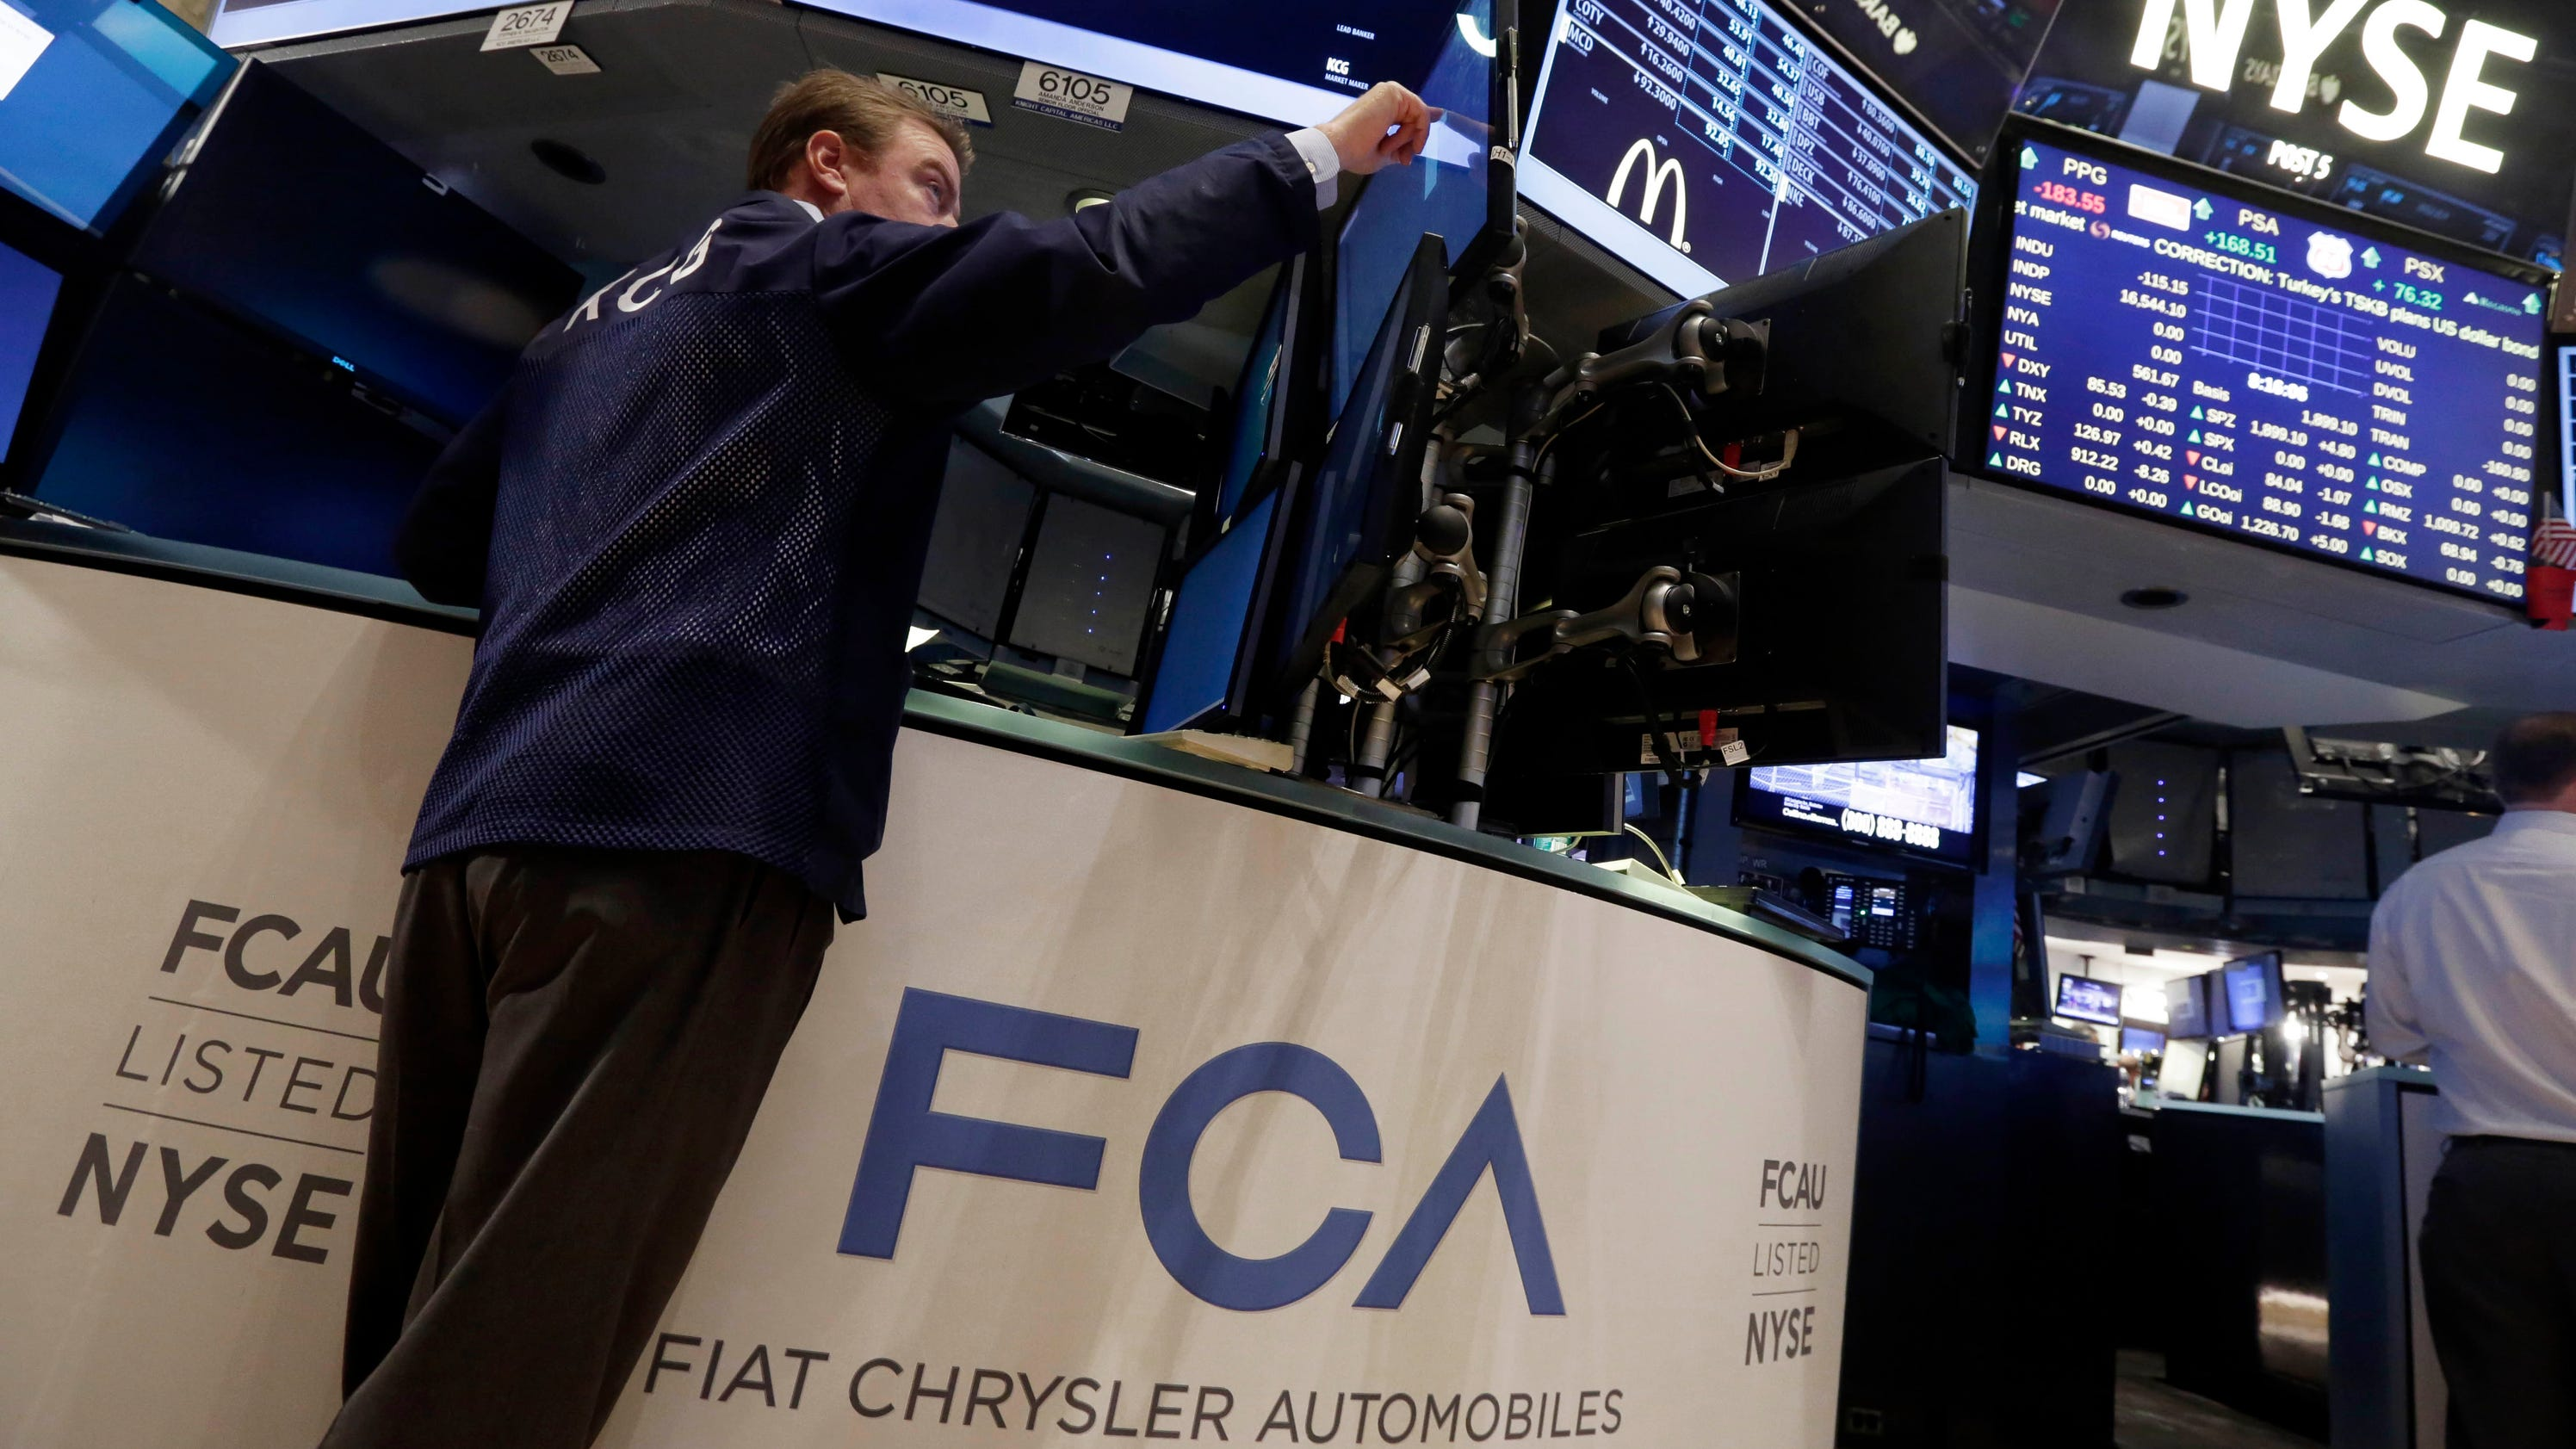 Fiat chrysler opens trading on nyse biocorpaavc Choice Image